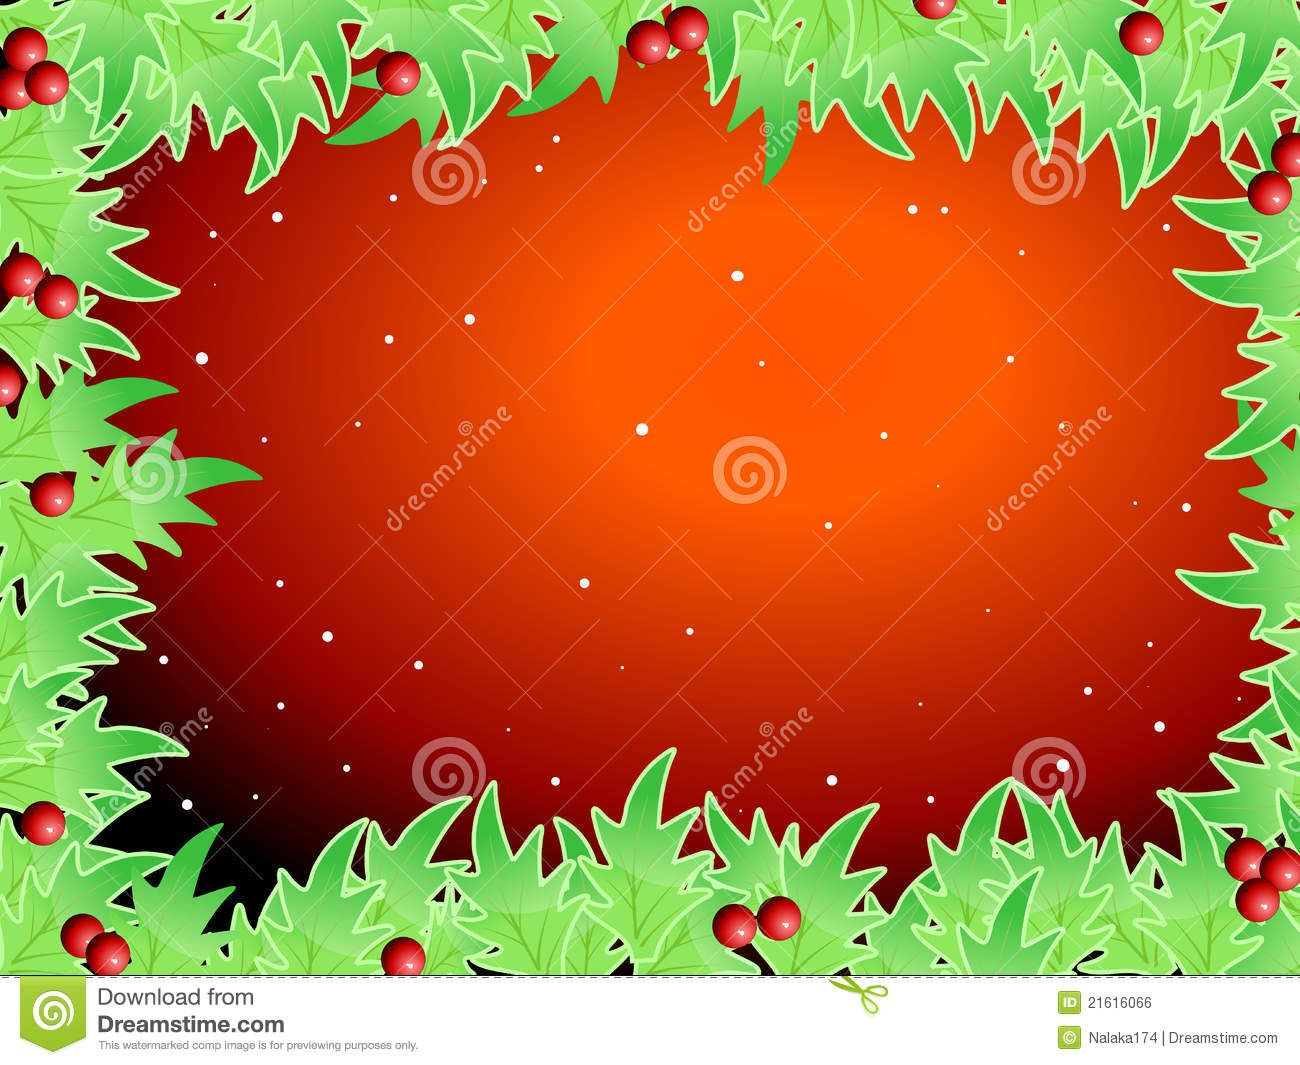 Blank Template For Christmas Greetings Card Christmas Card Templates Free Card Templates Free Christmas Card Template